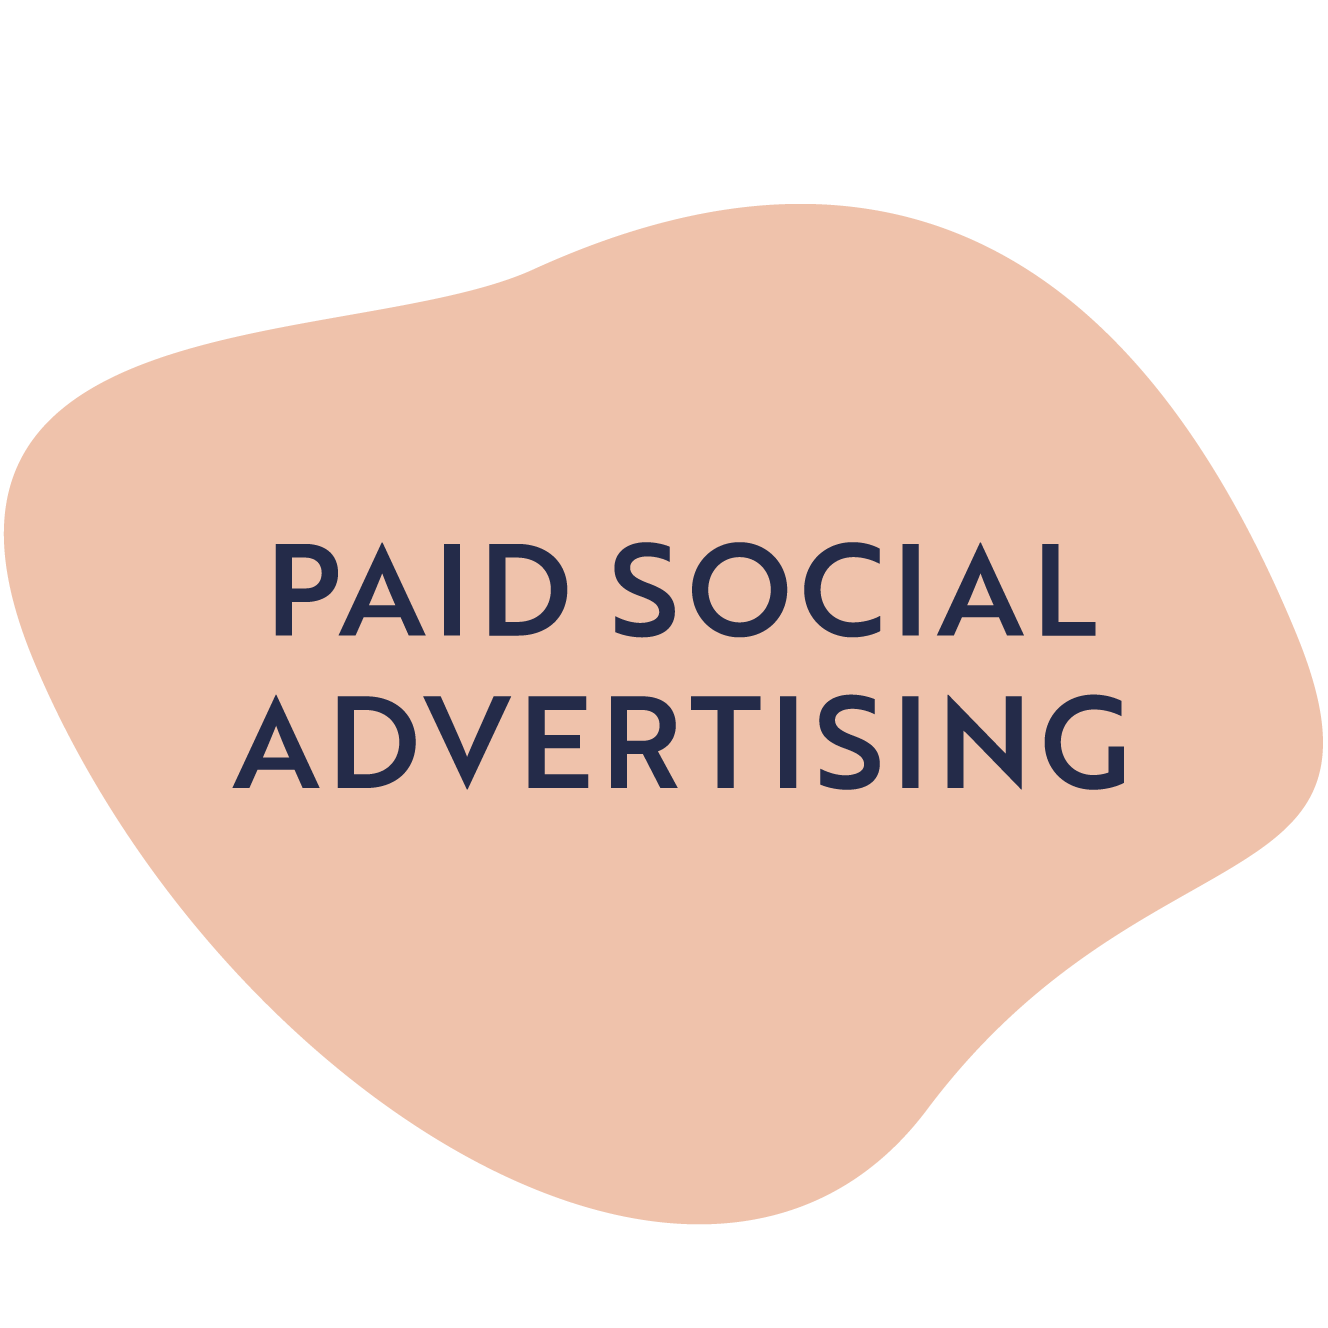 - Paid social media advertising will allow you to take advantage of the most targeted and cost-effective form of advertising available today. We can help you generate consistent sales and leads by building out ad funnels which can guarantee at least 2x return on investment. It is really a no brainer.Facebook and Instagram ads are the best way to reach current and potential customers at every stage of their journey from awareness right through to purchase. We will study and analyse your target audience through various tools which allows us to create look-alike and custom audiences. These laser-targeted audiences are extremely powerful to position your product or service in a way that will immediately resonate with the user and convert either to sales or leads.